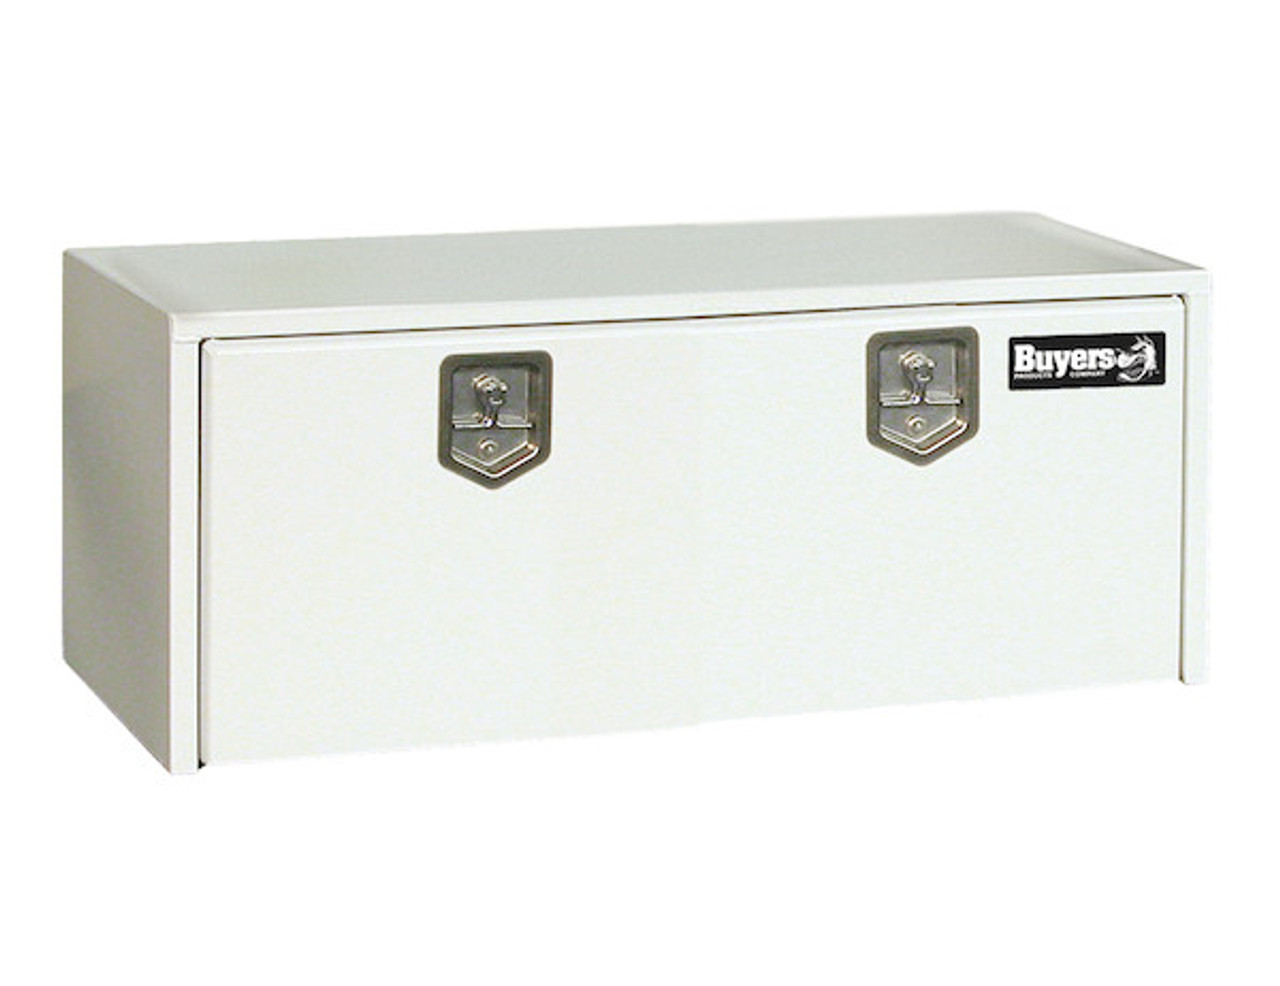 """1704410 BUYERS PRODUCTS WHITE STEEL UNDERBODY TRUCK TOOLBOX 24""""HX24""""DX48""""W"""